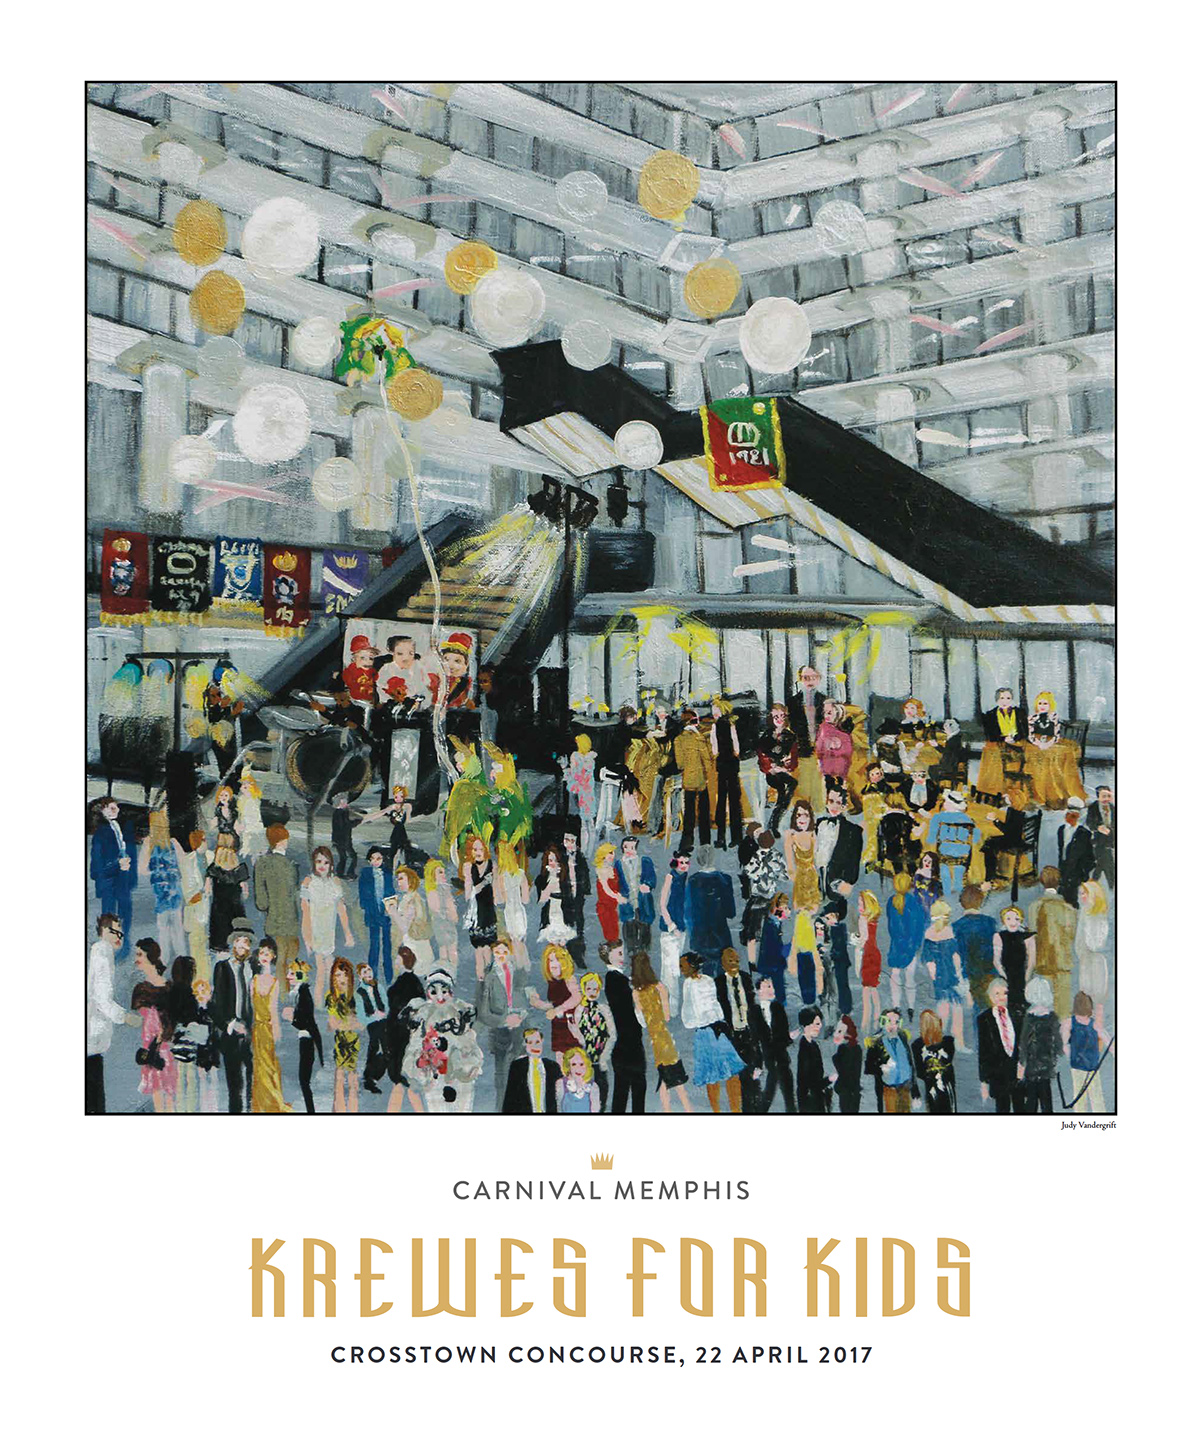 Buy A Krewes For Kids 2017 Poster Today!